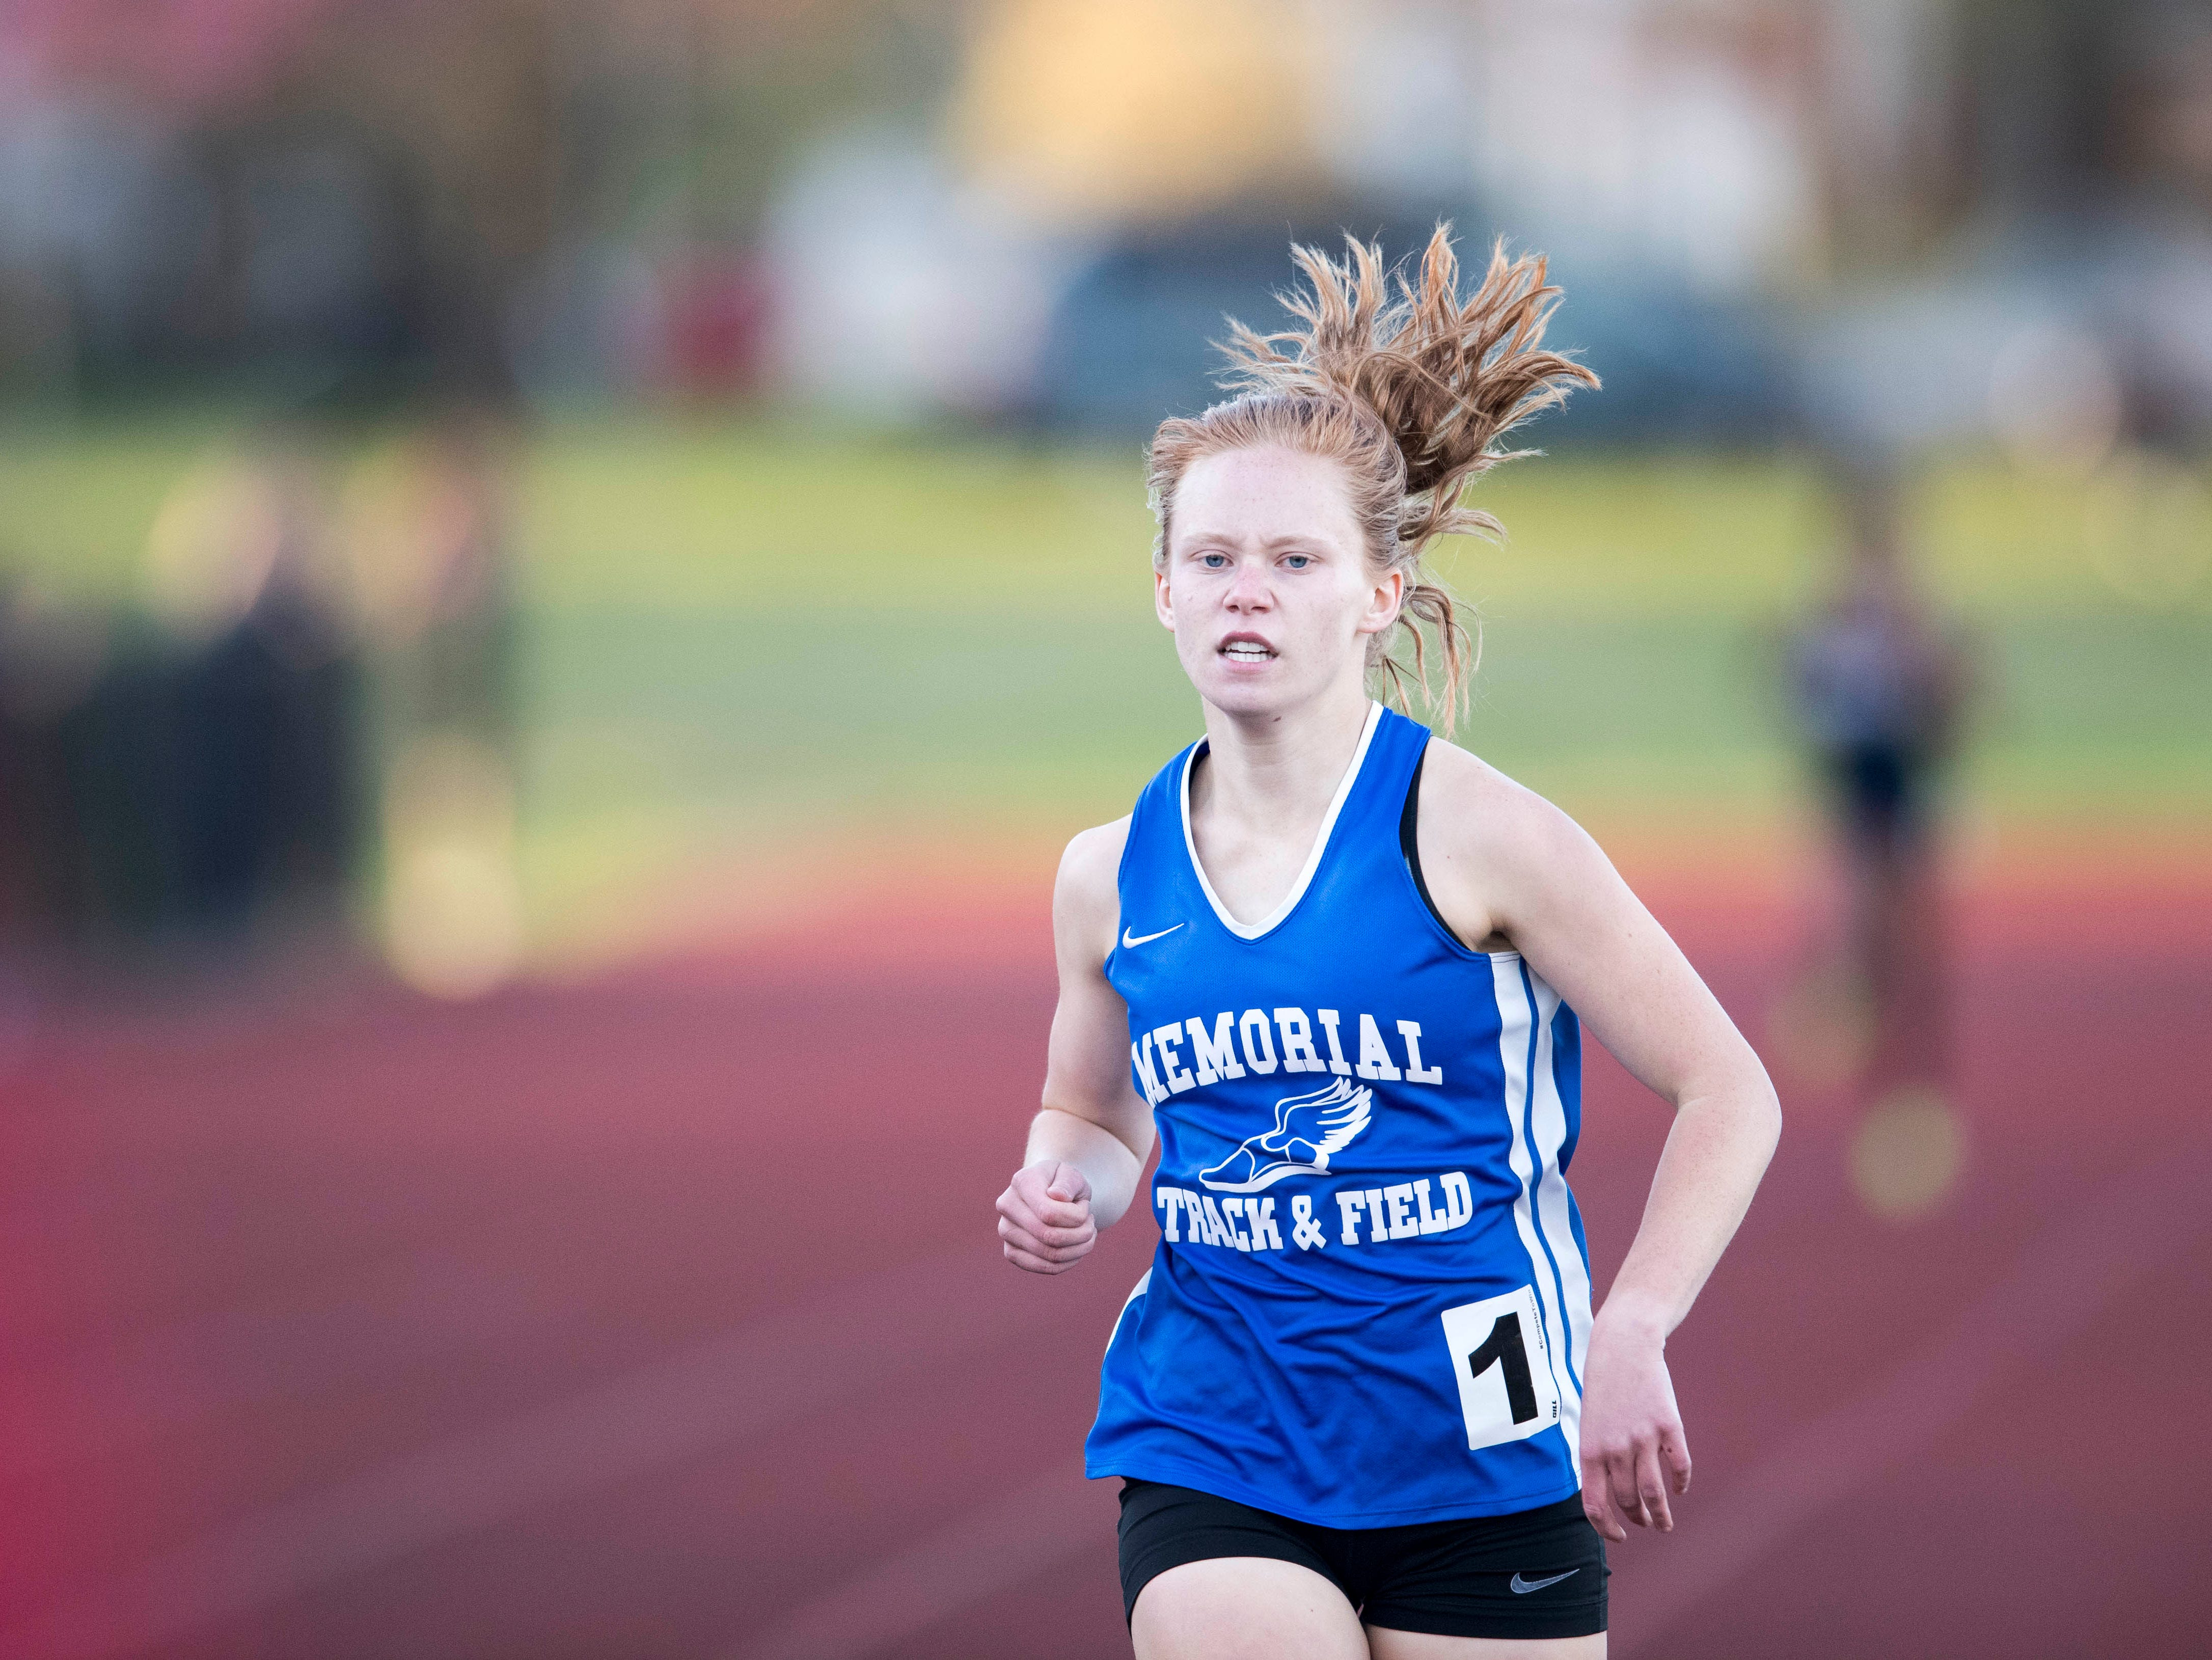 Memorial's Allison Morphew leads in the girls 800m run during the 2019 City Track and Field meet at Central High School Friday, April 12, 2019.